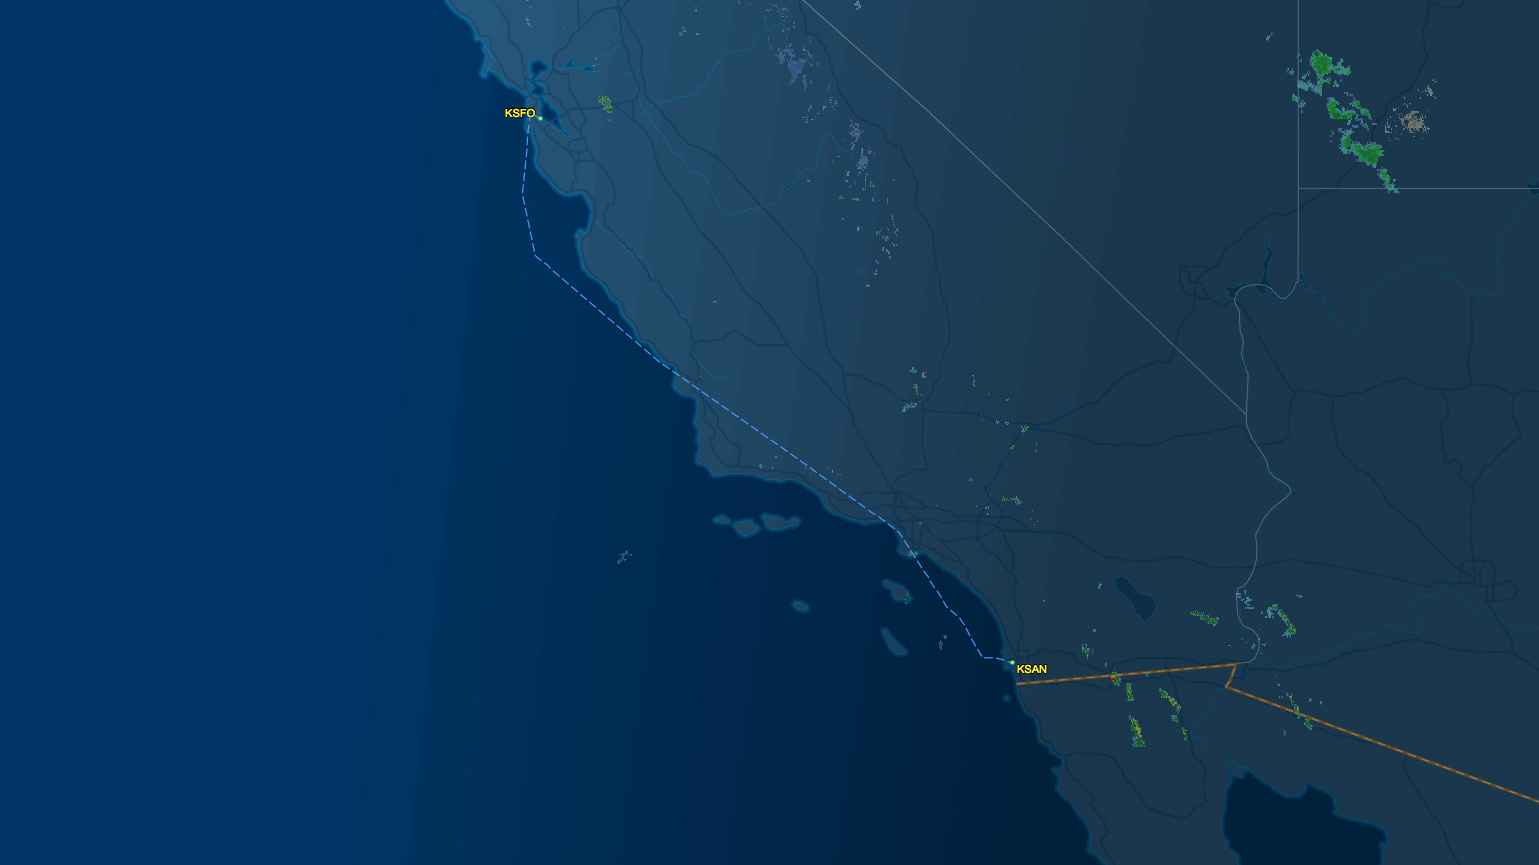 SFO to SAN air route map